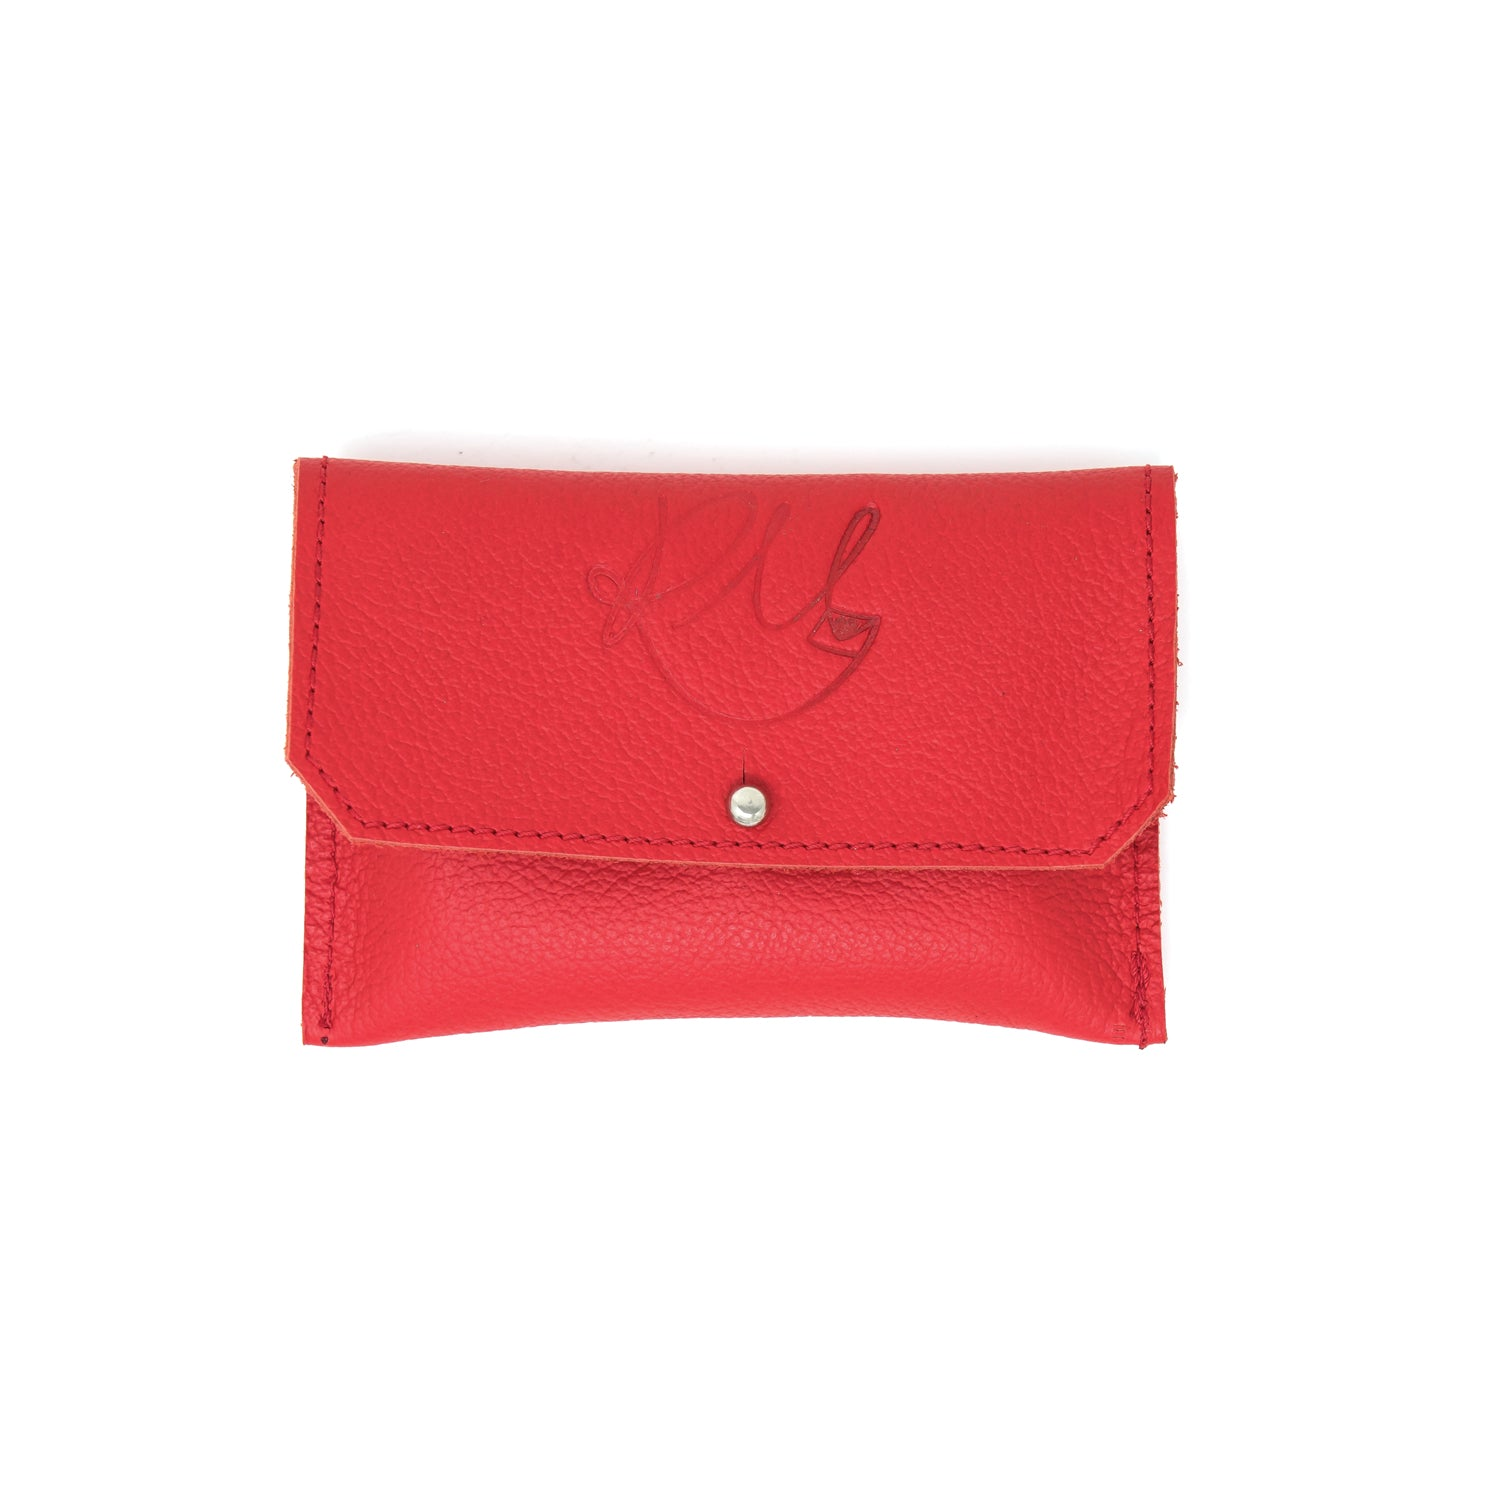 Dahlia coin purse - Red Biker leather